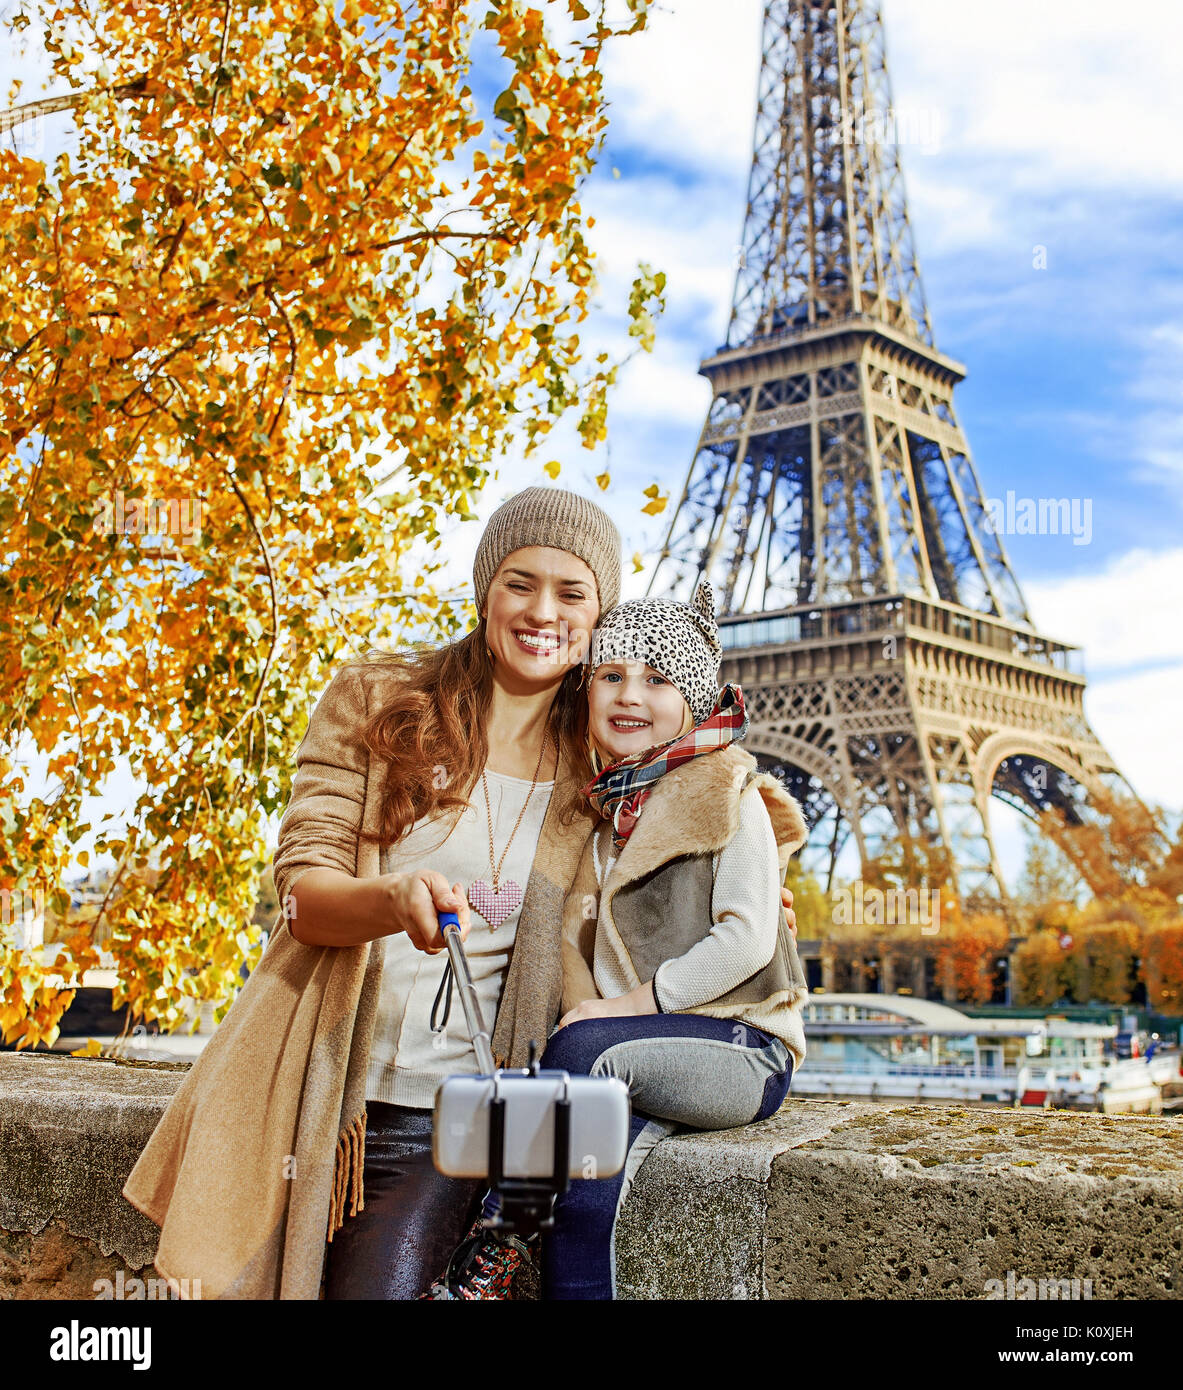 Autumn getaways in Paris with family. smiling mother and child travellers on embankment in Paris, France taking Stock Photo